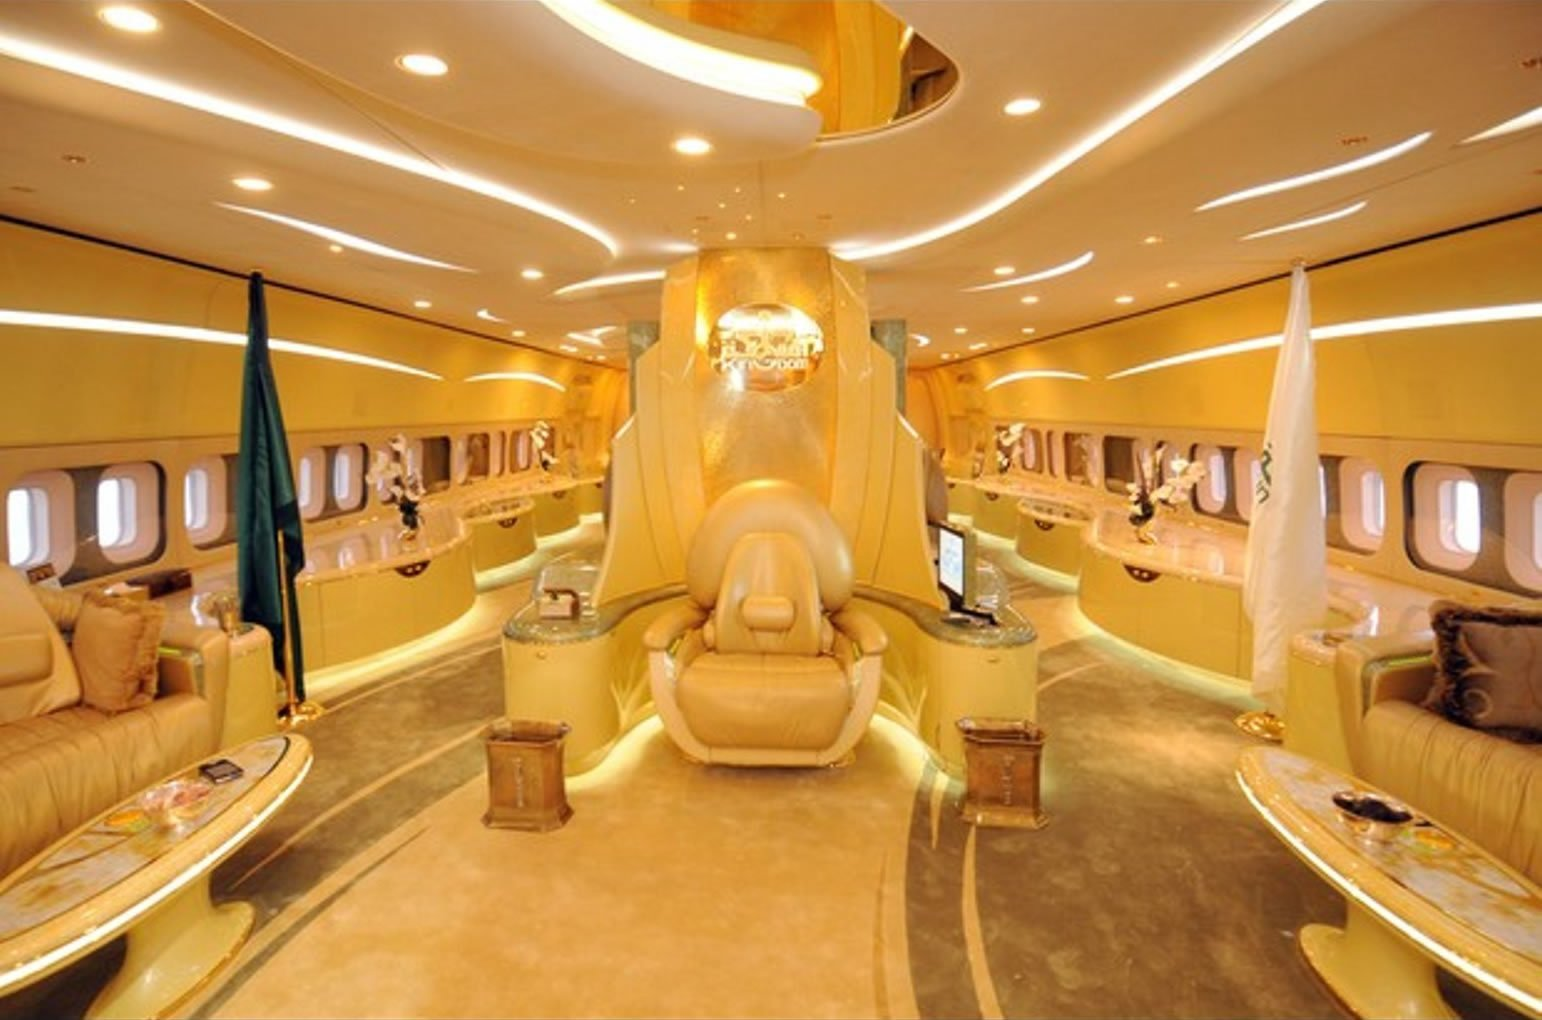 These are the biggest and most luxurious private jets ever